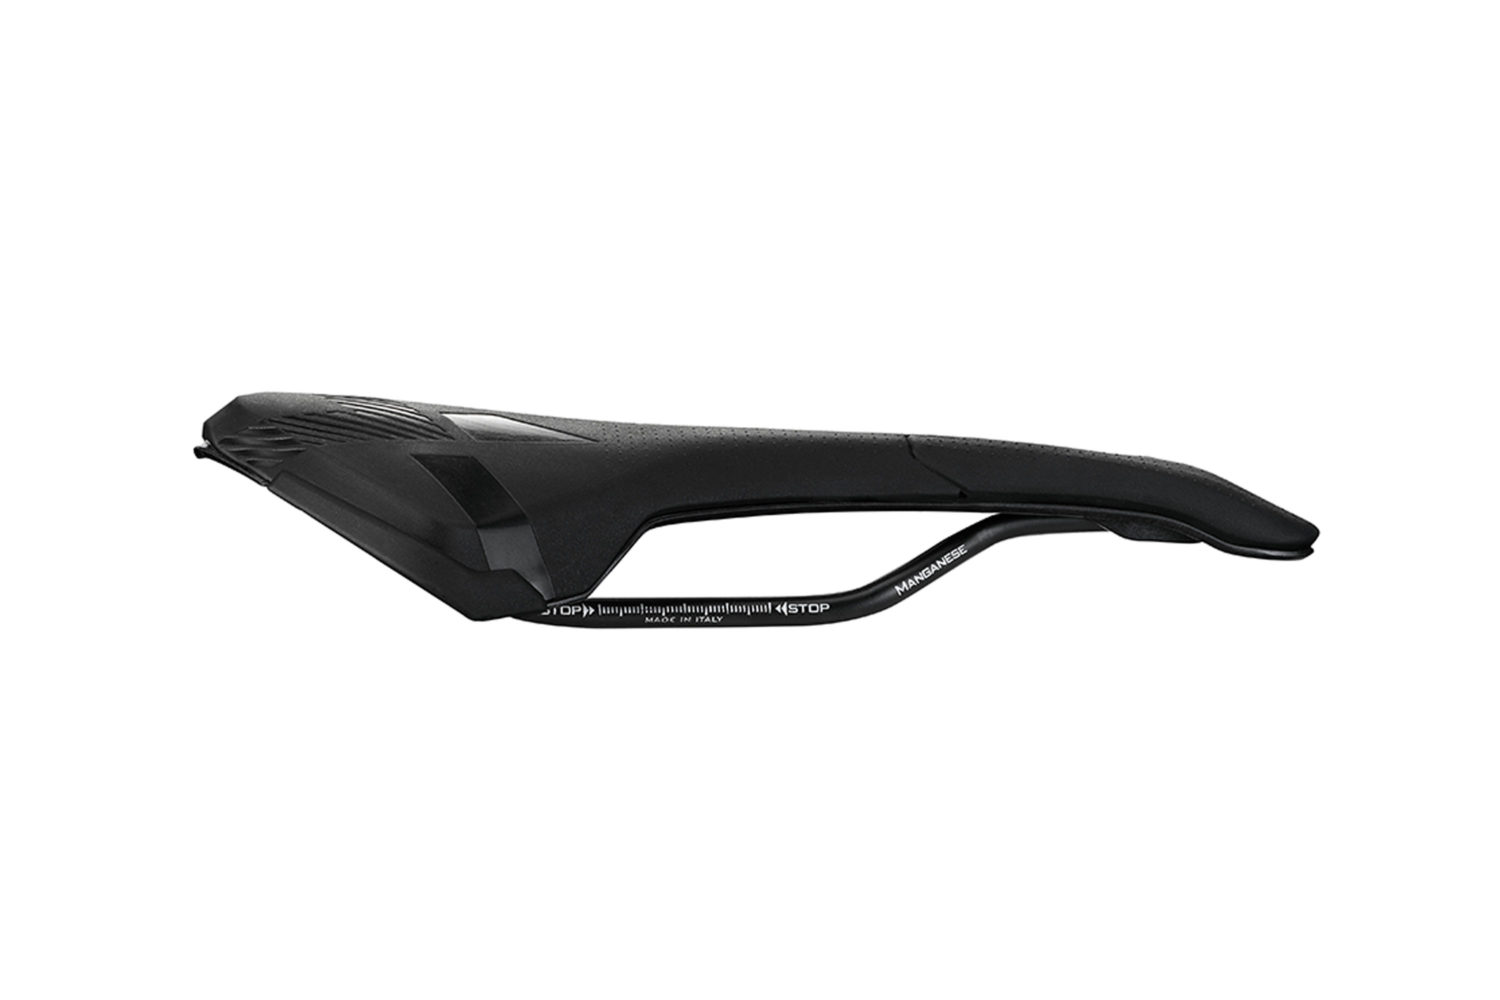 SJEDALO SELLE ITALIA X-LR TM AIR CROSS S MN AM